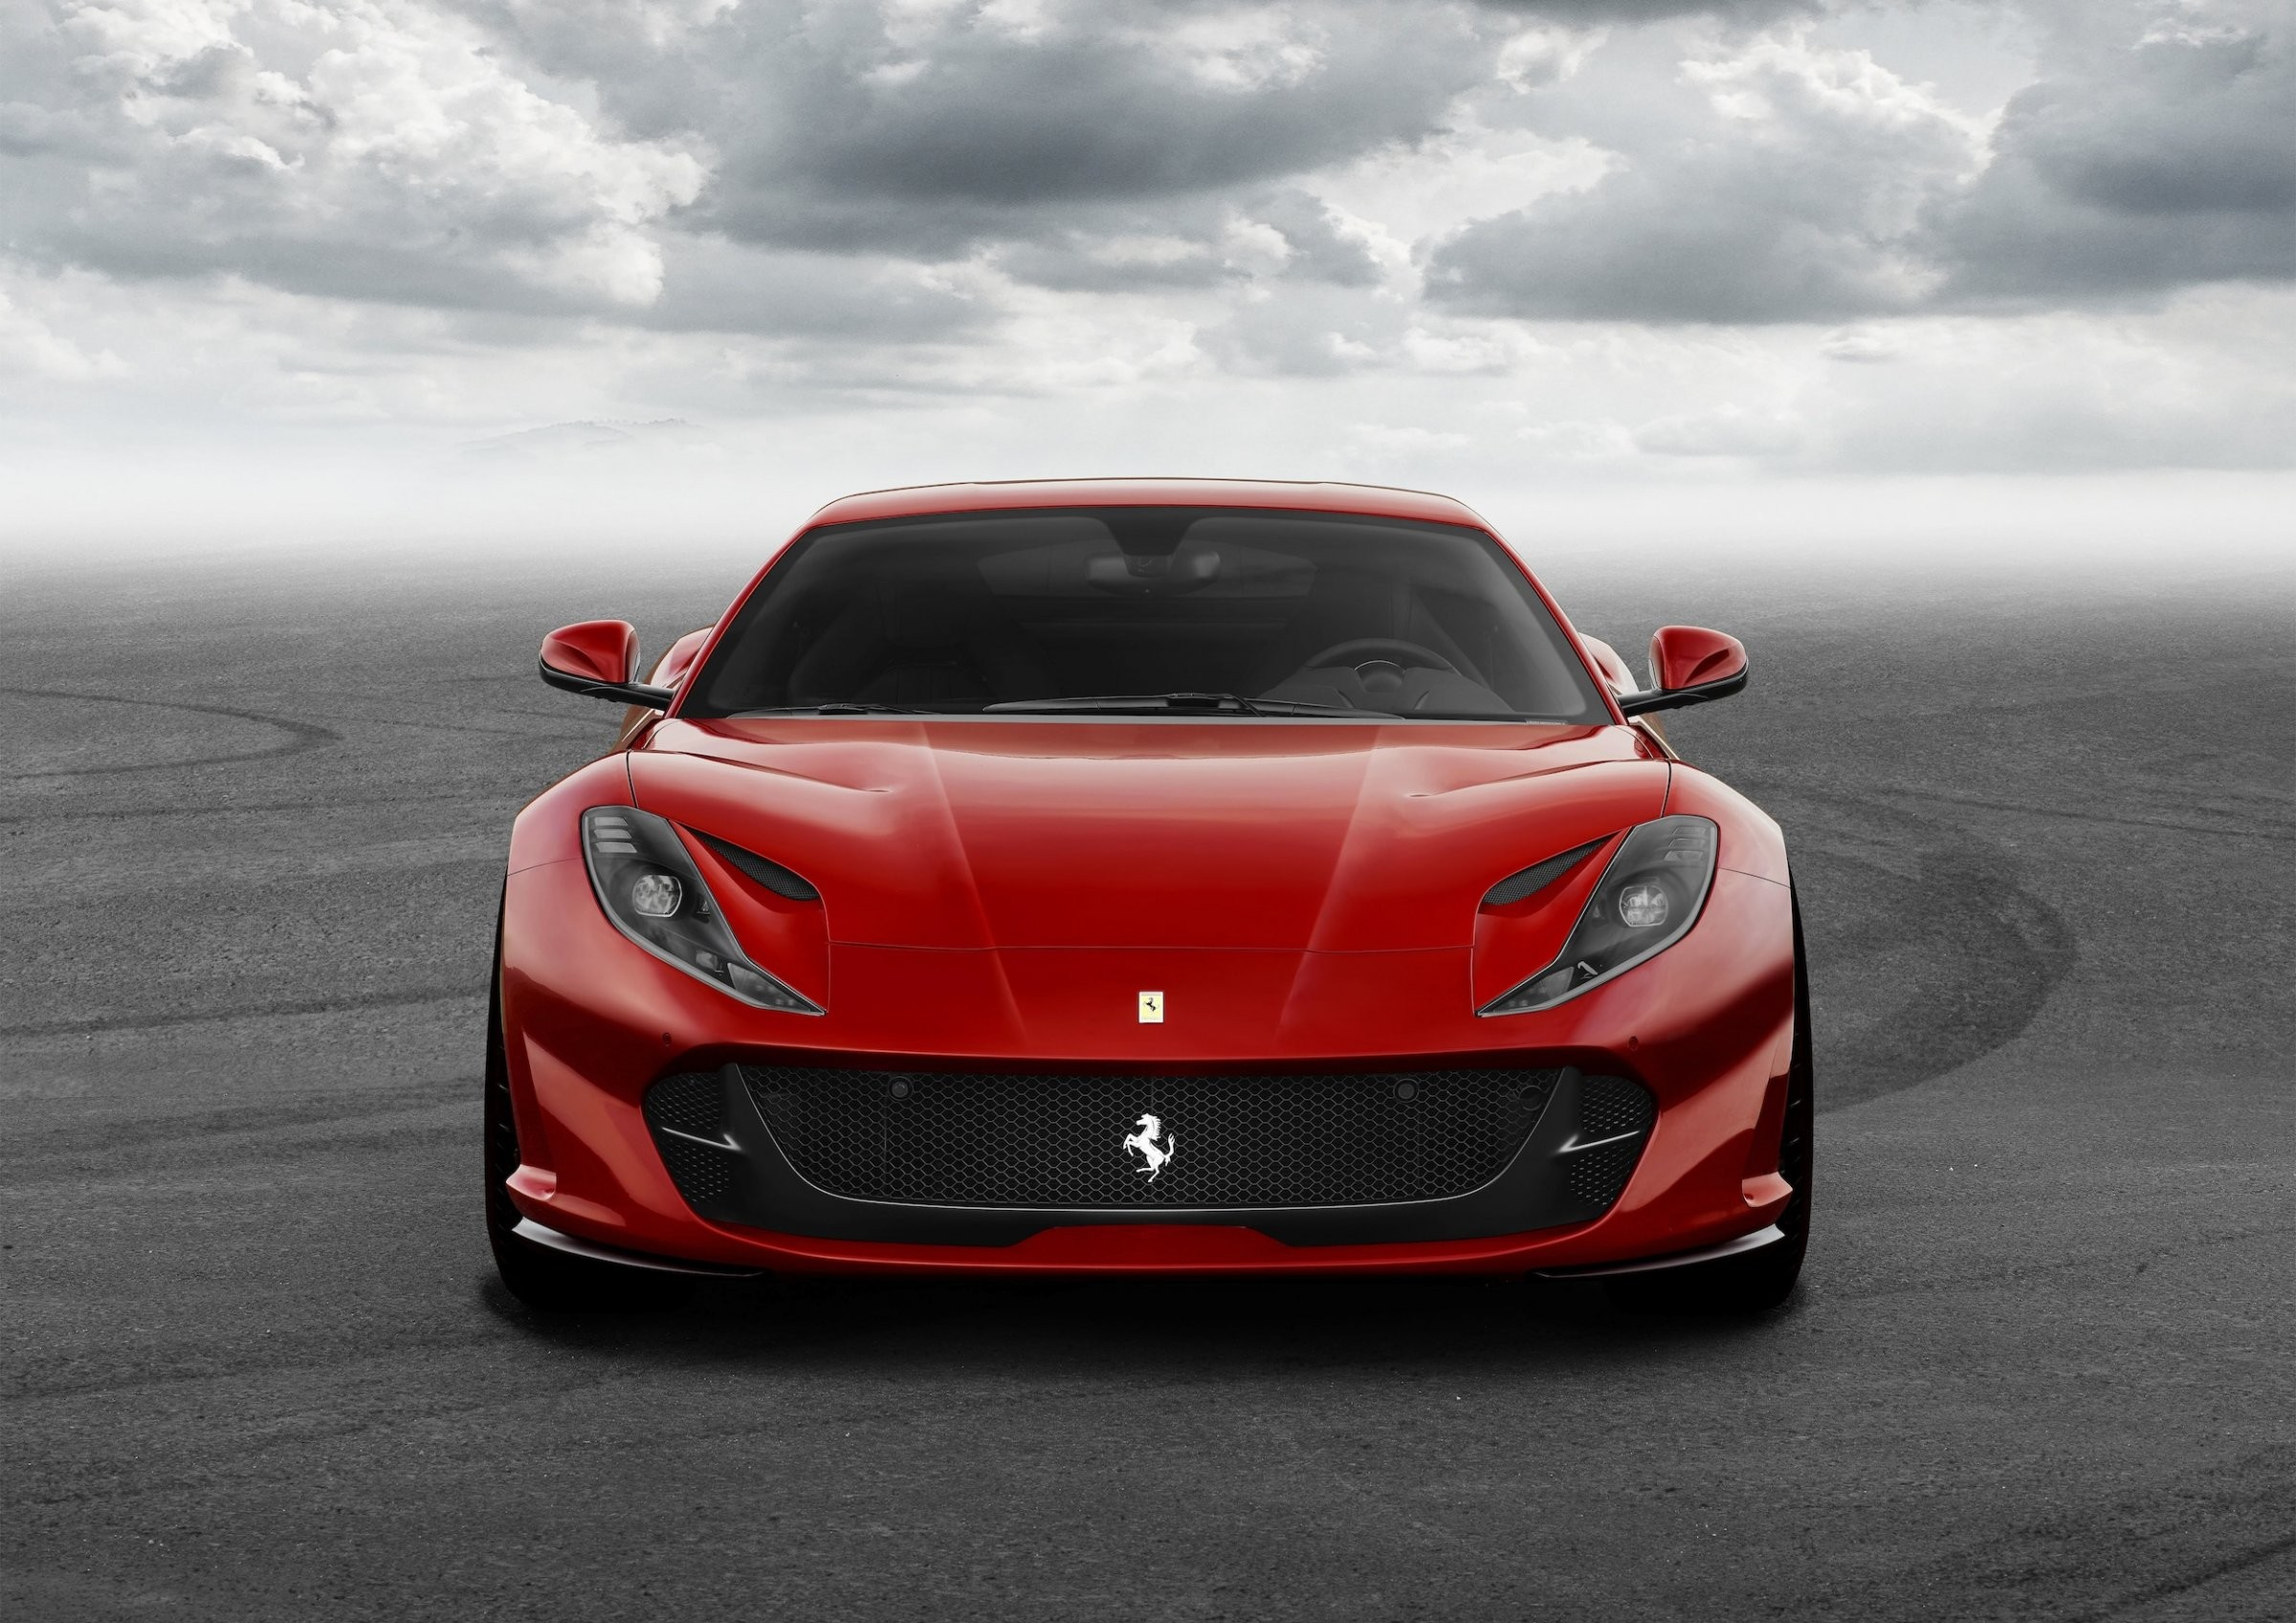 Wallpaper Ferrari Superfast Supercar Front Cars Bikes